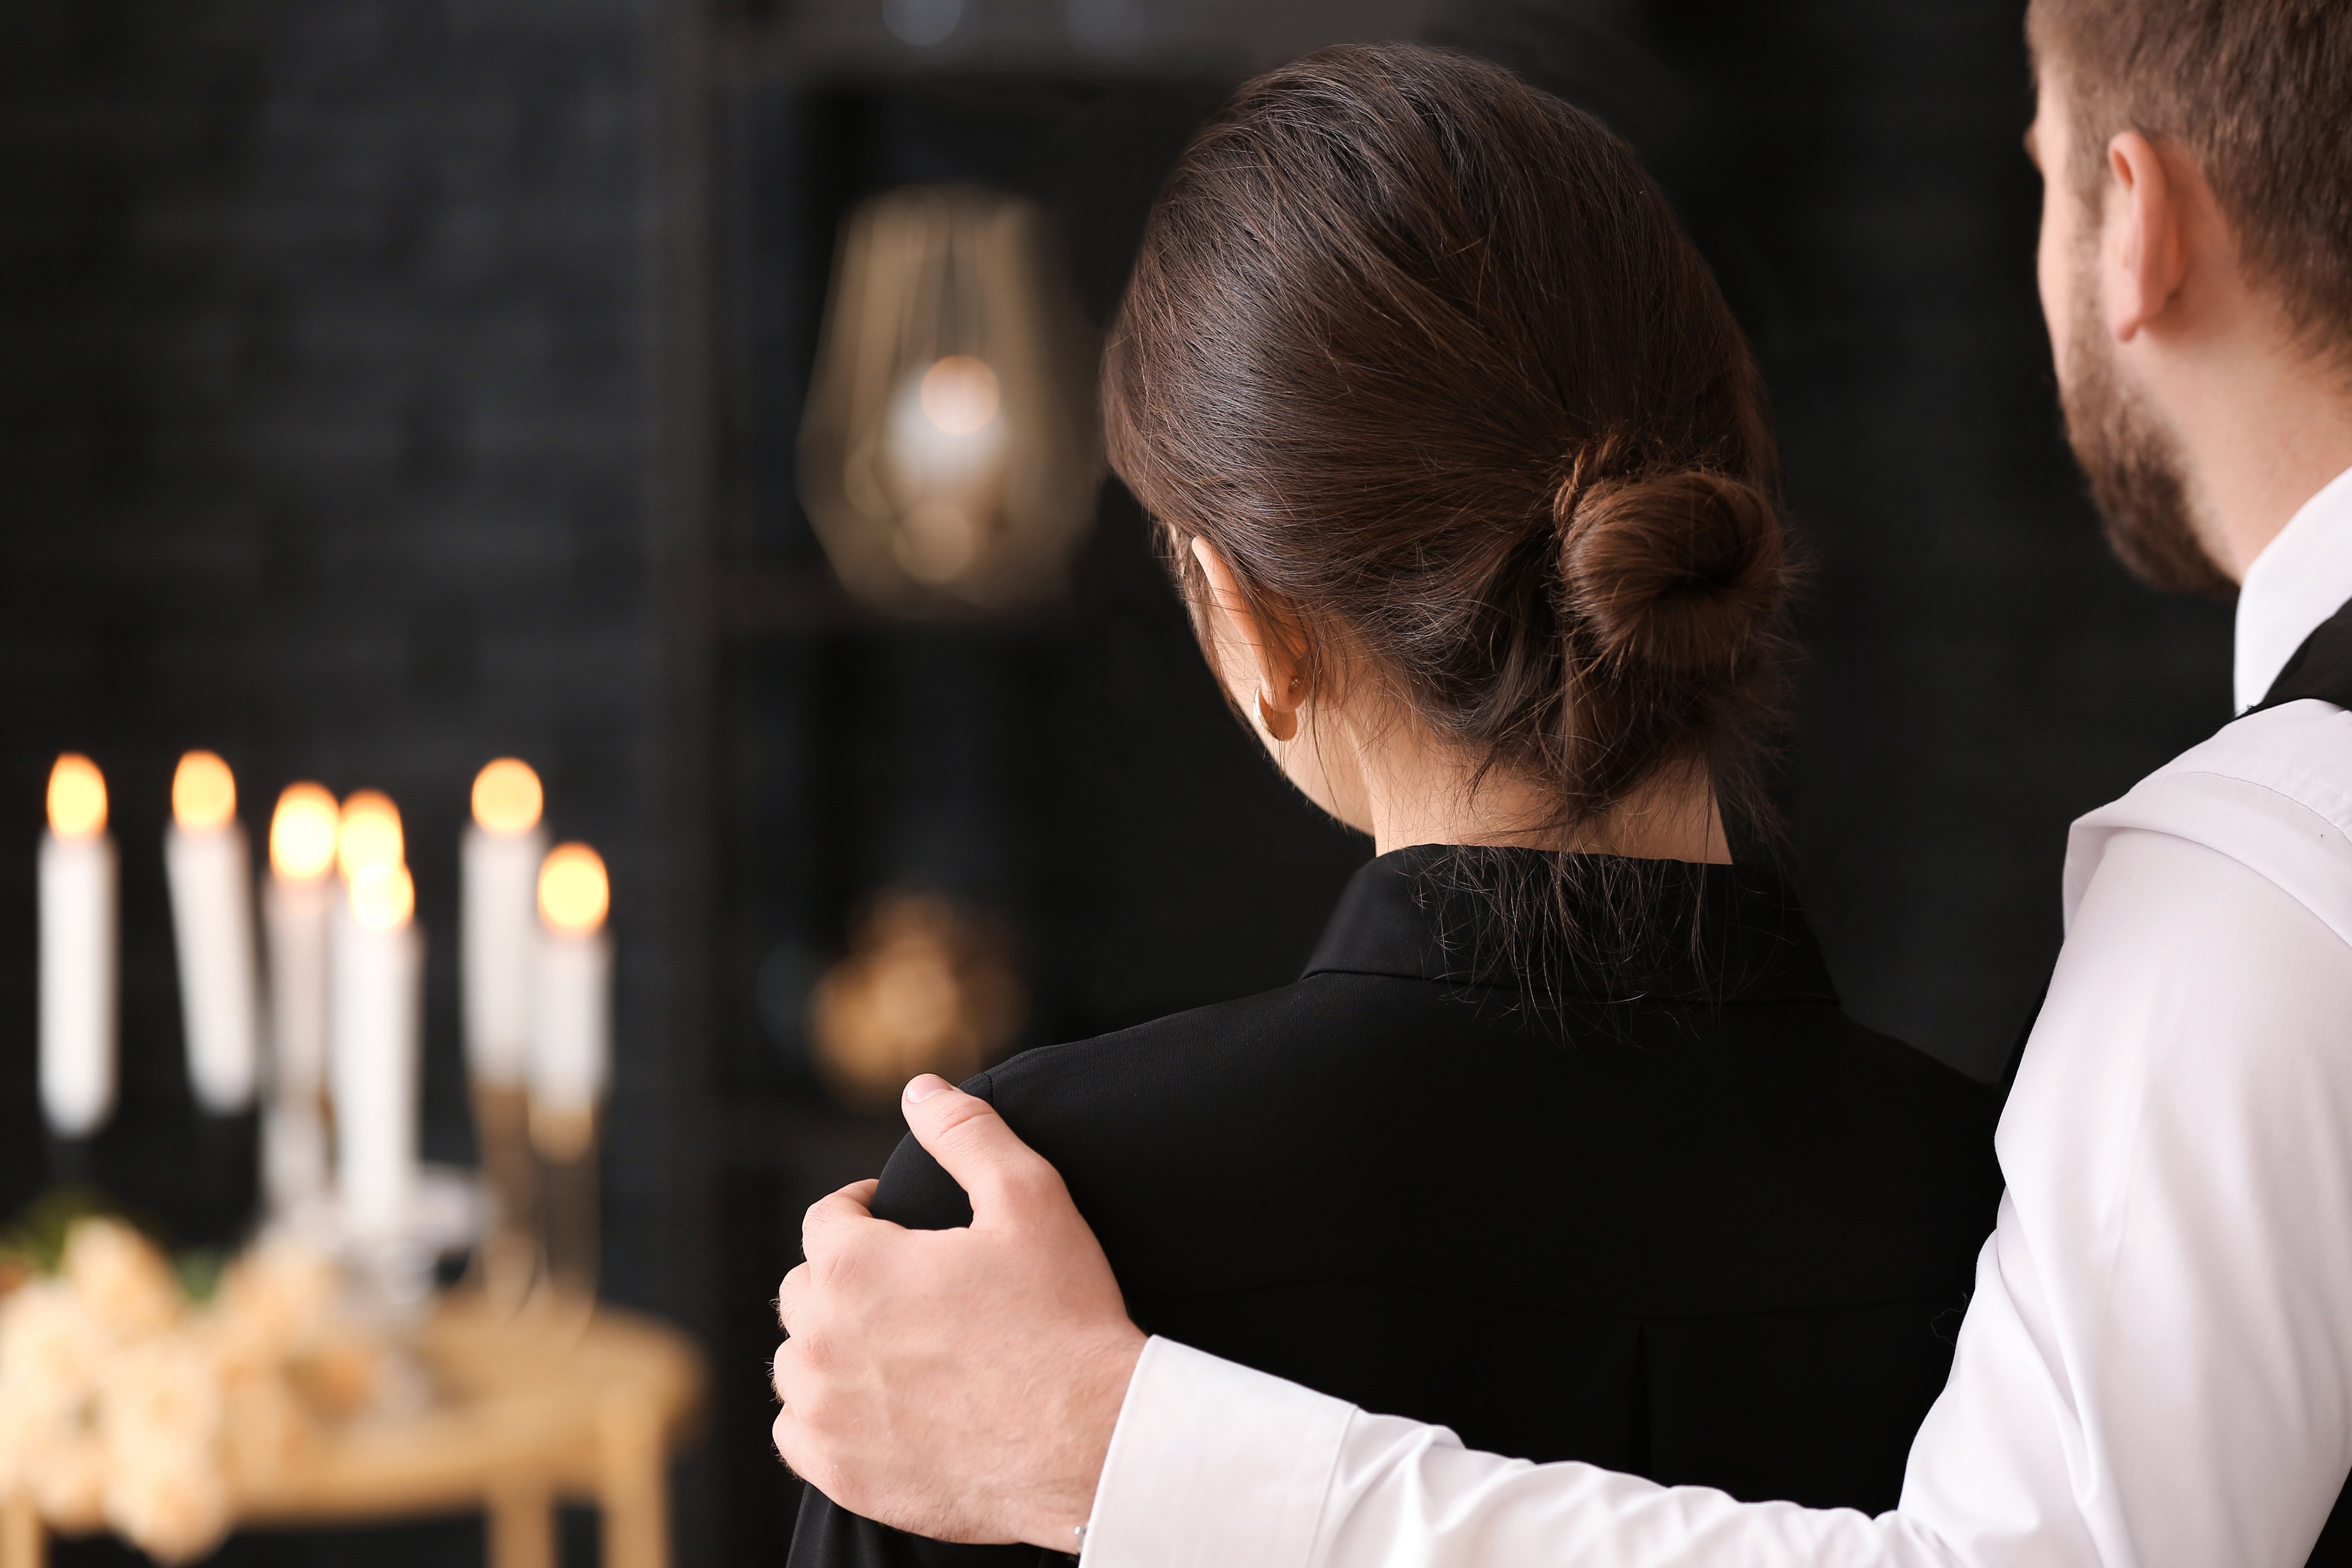 A man and a woman mourning the loss of a loved one | Photo: Shutterstock